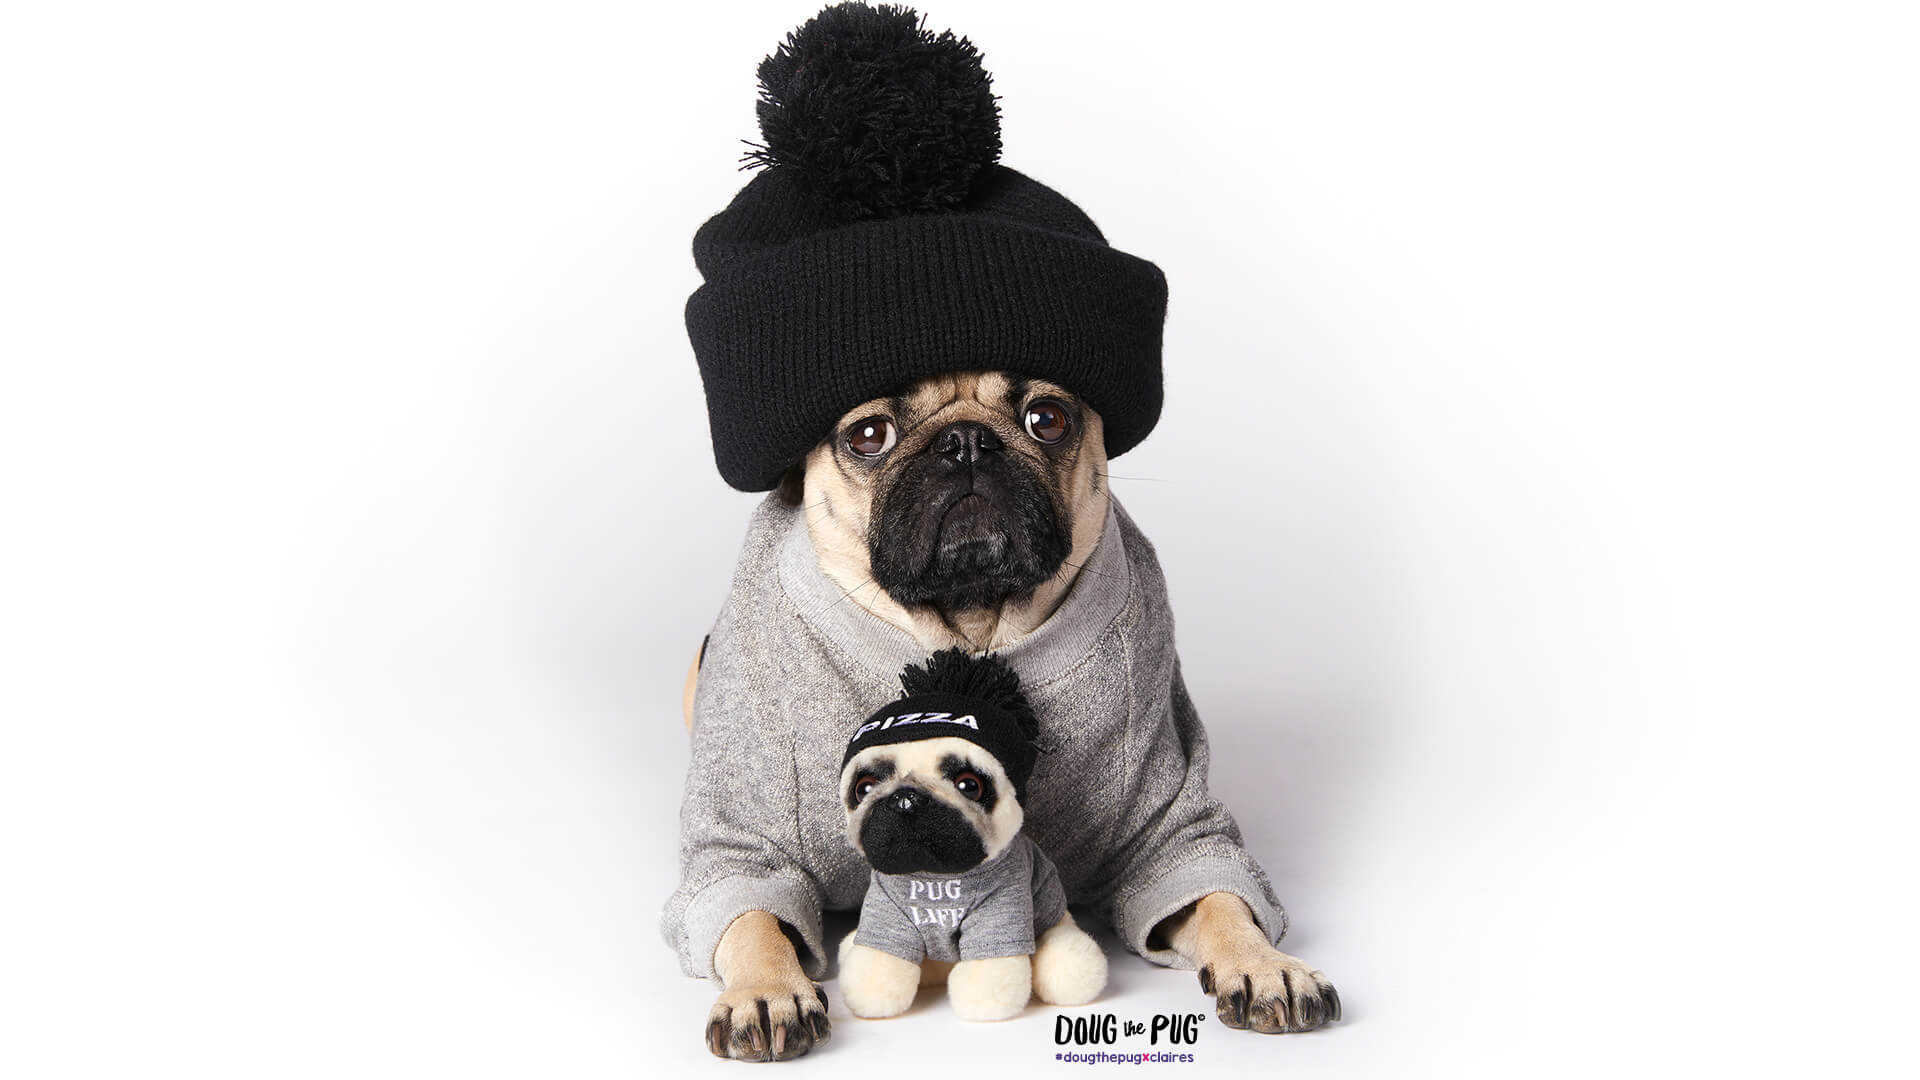 Cute Wallpapers For Iphone 5c Doug The Pug 169 Claire S Us